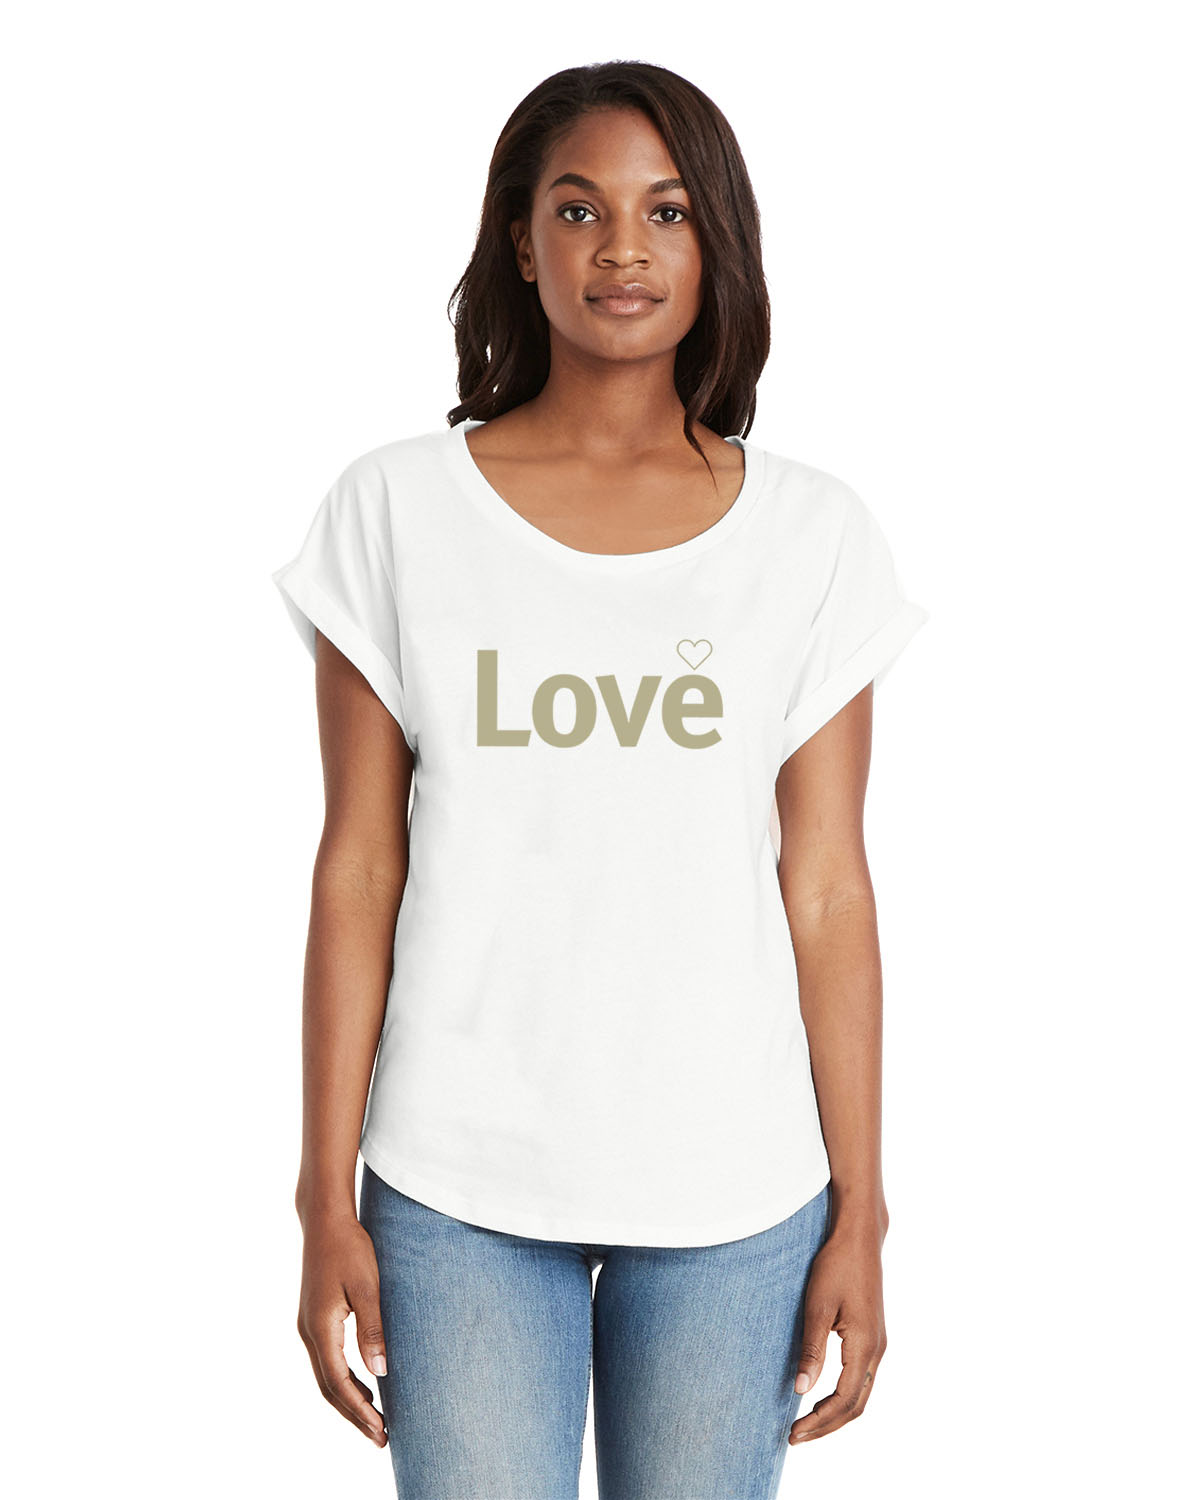 Love Dolman Sleeve T-shirt for women (white)